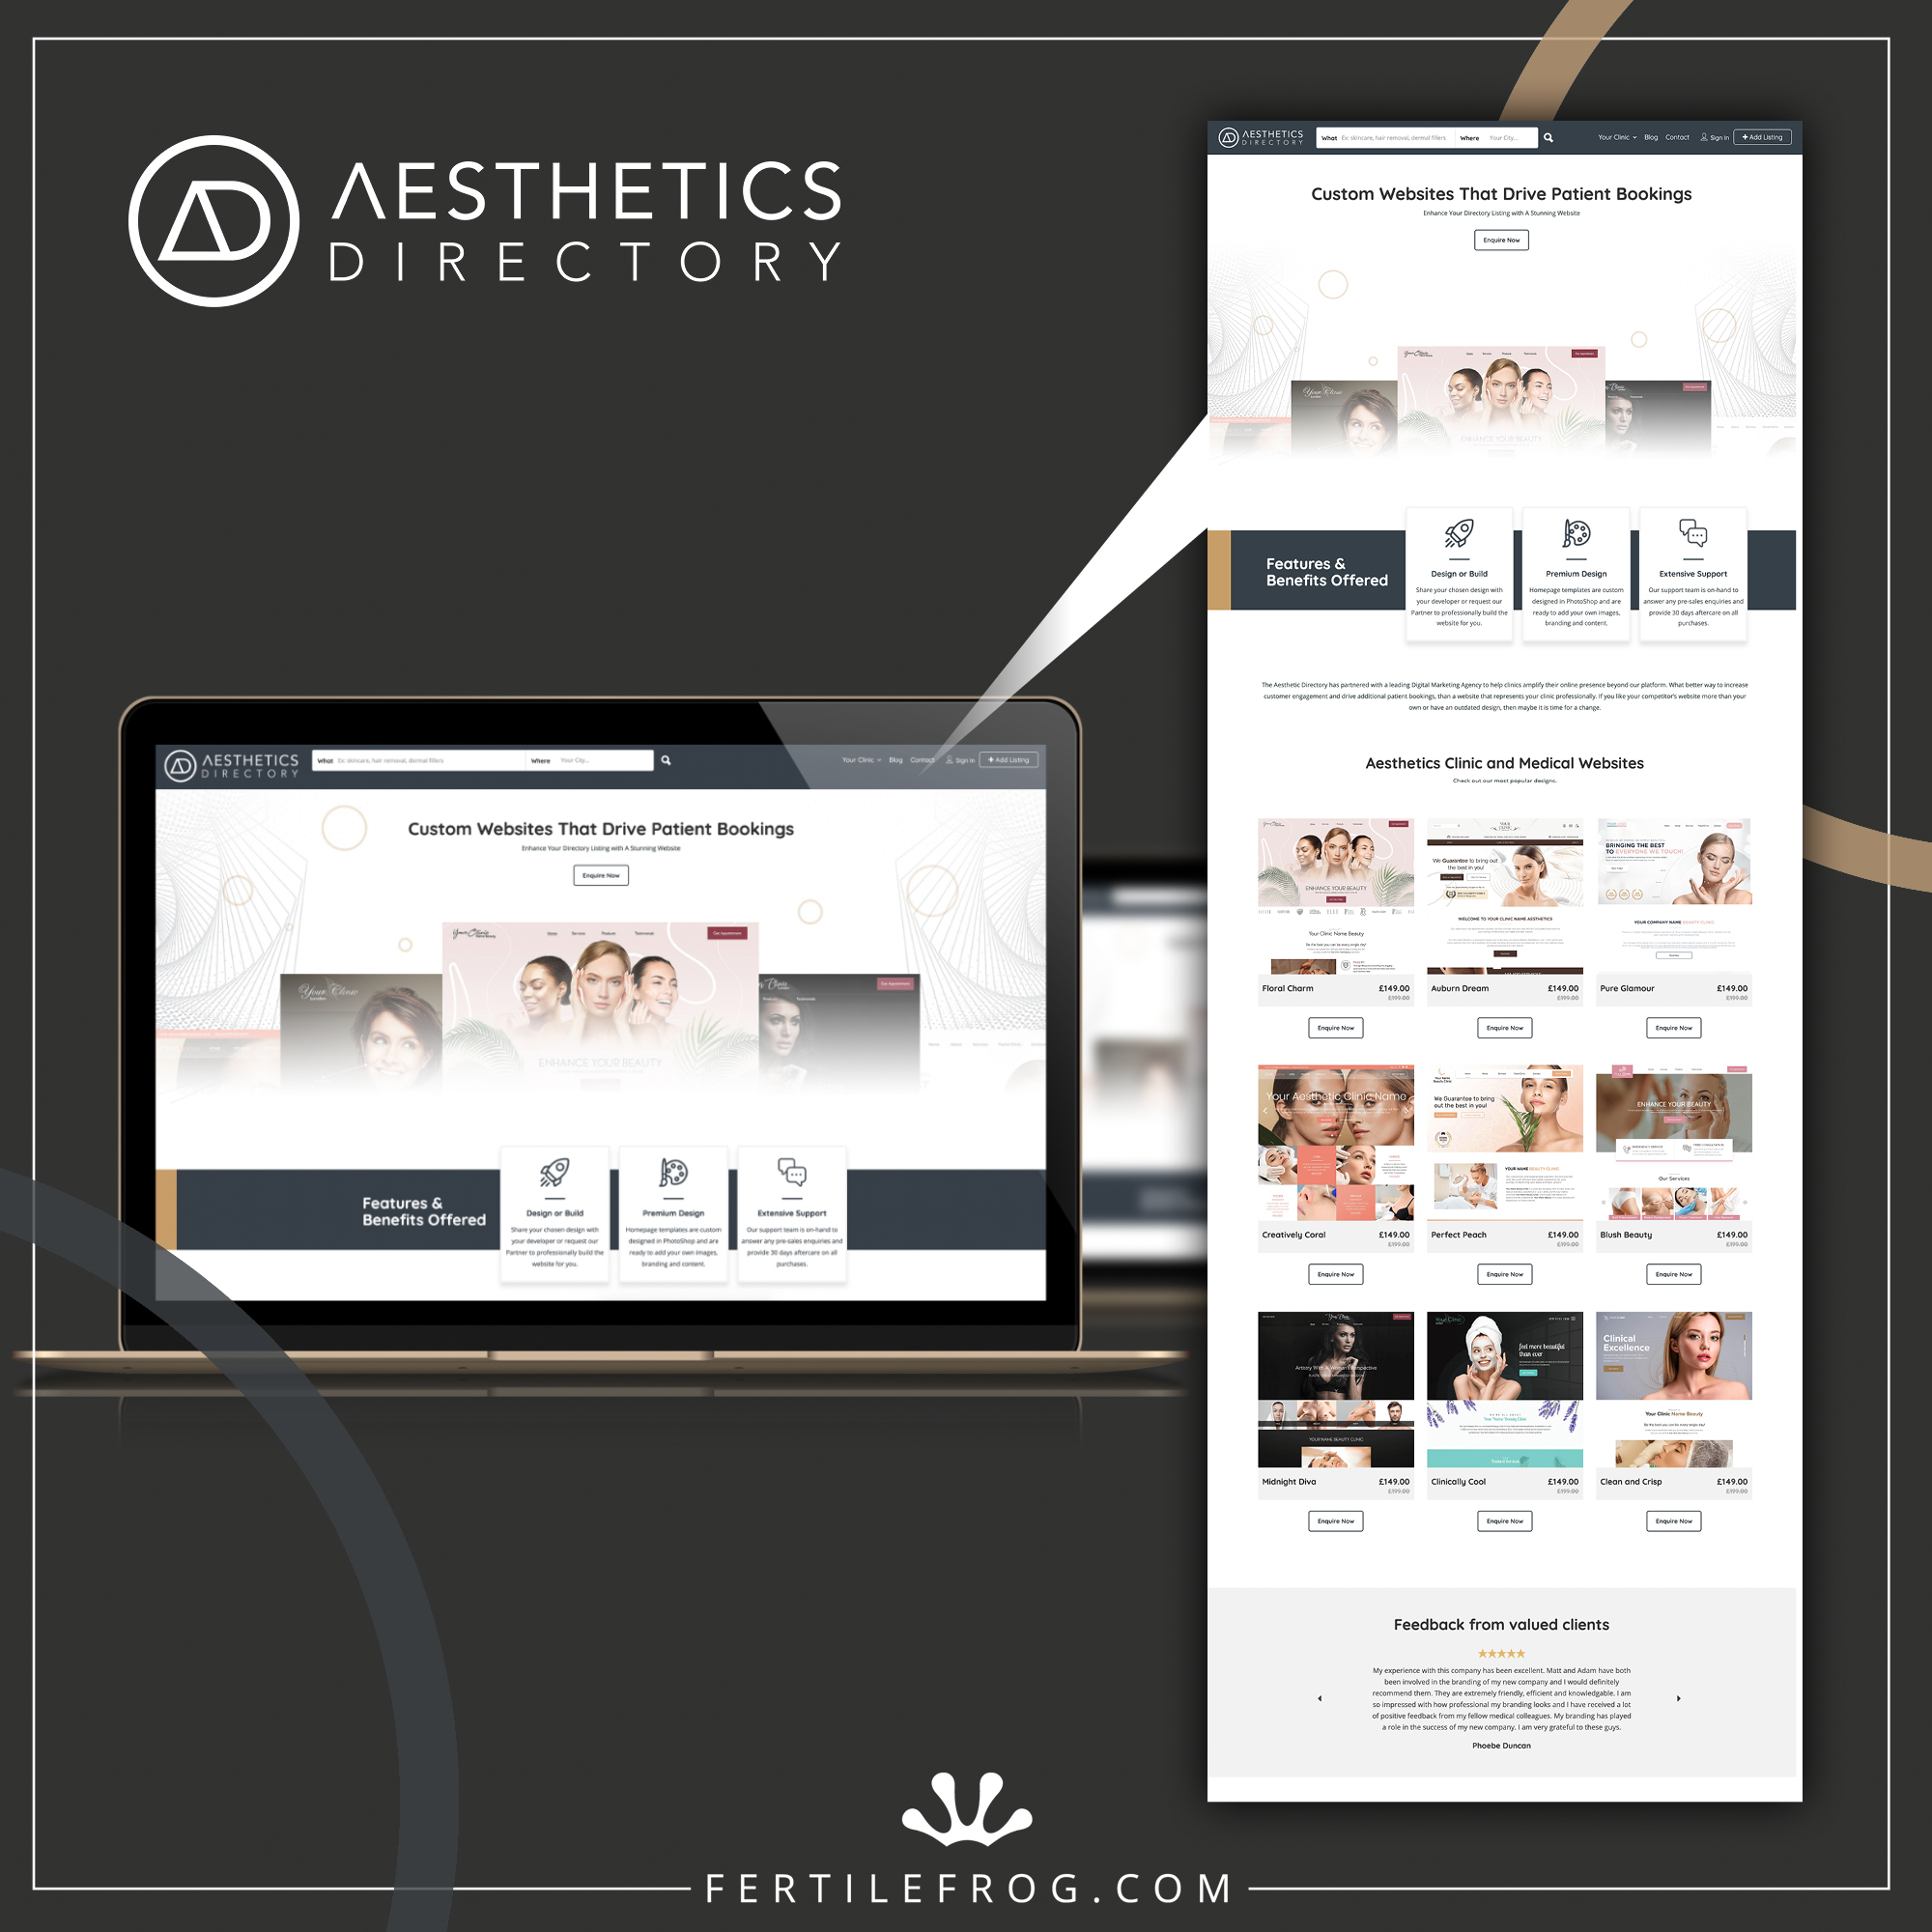 Graphic showing a screenshot of the Aesthetics Directory website store page